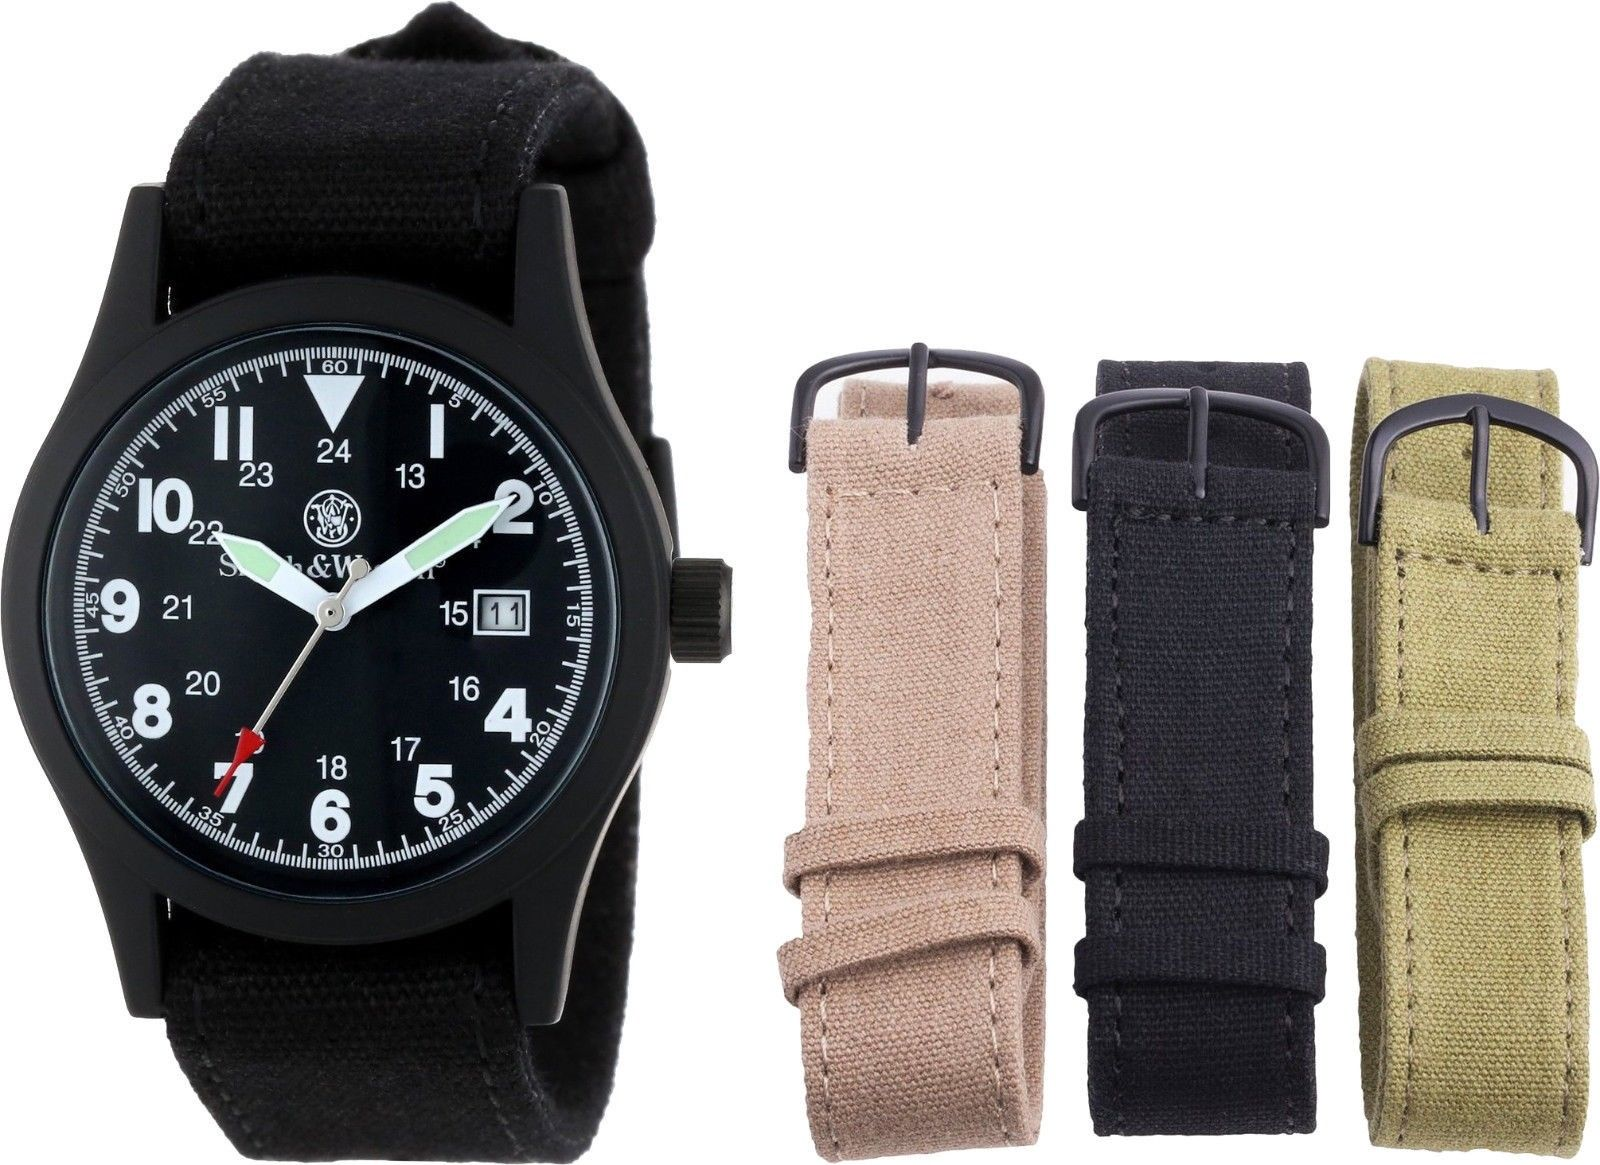 Smith & Wesson Black Water Resistant Military Interchangeable Band Watch Set